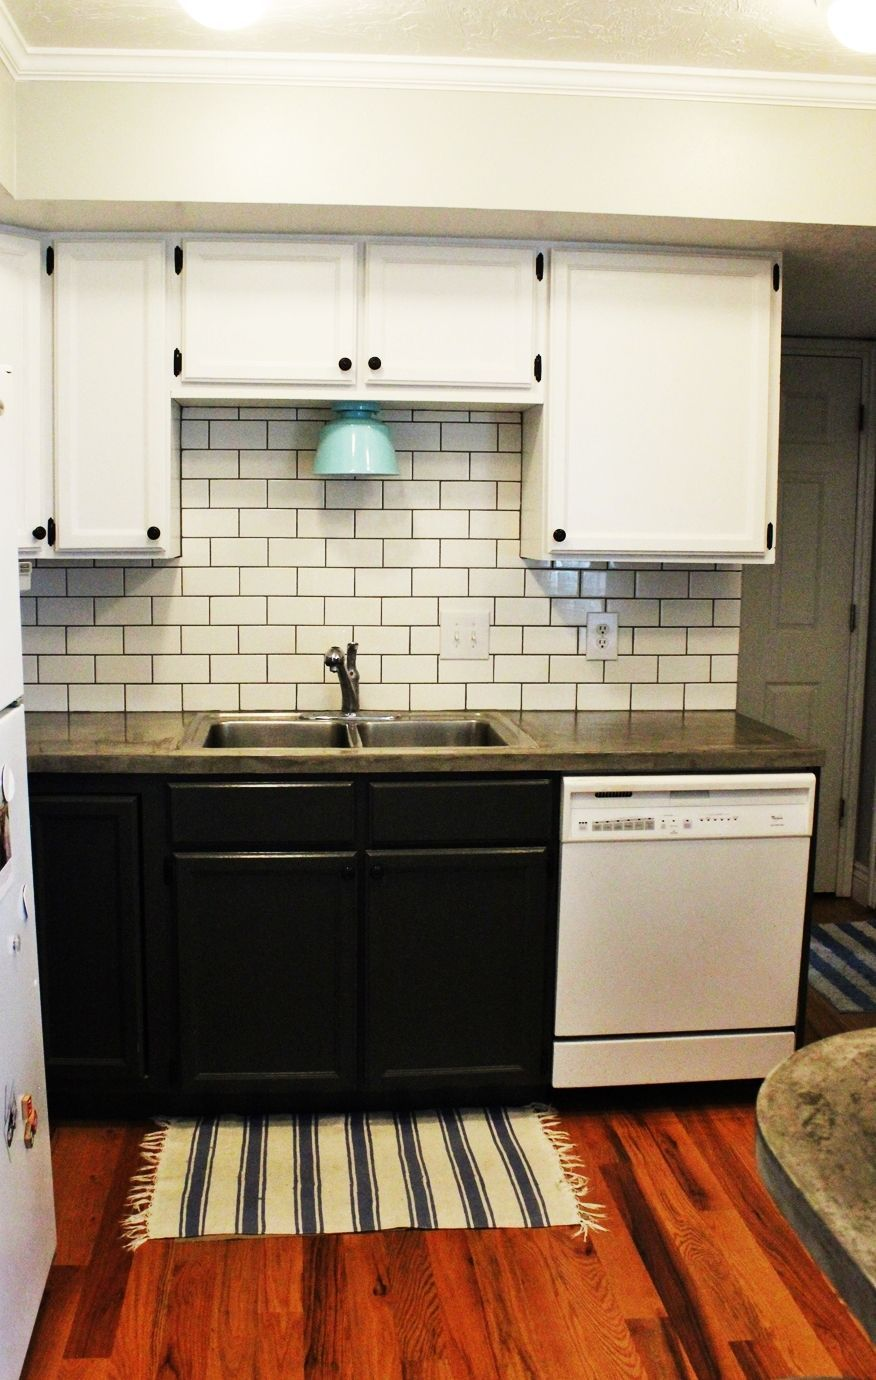 Kitchen Backsplash Video how to install a subway tile kitchen backsplash